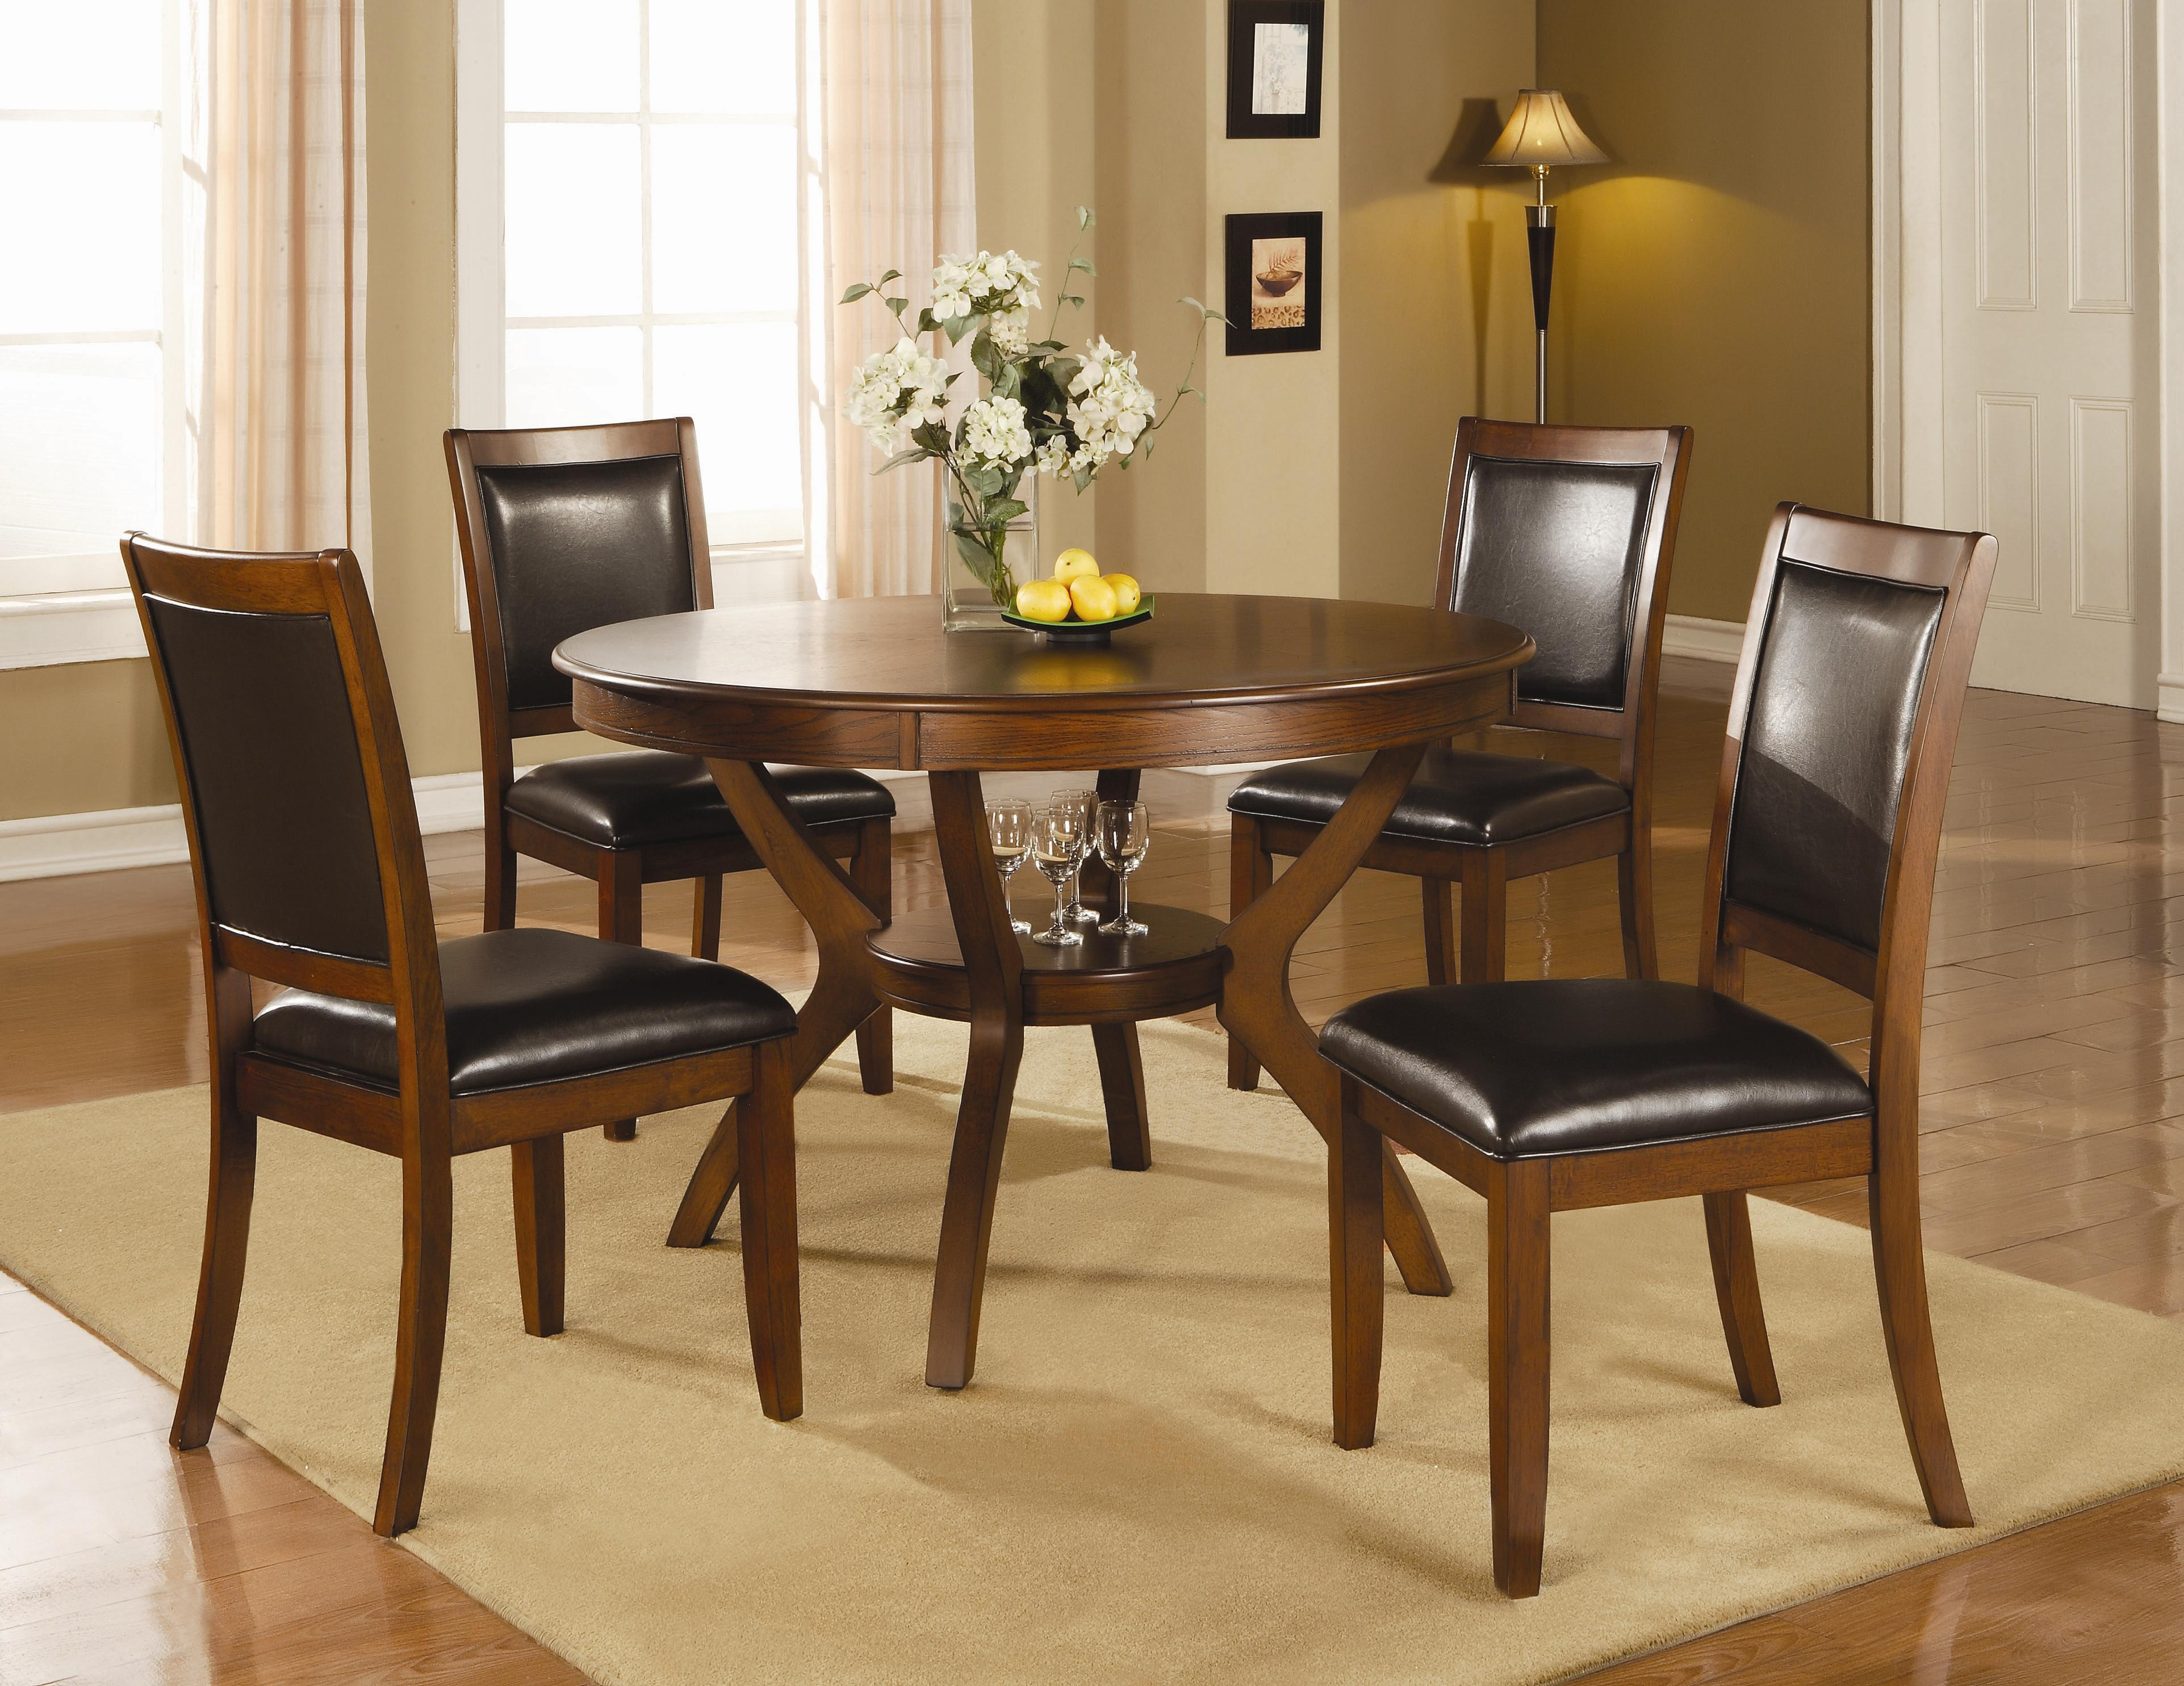 Coaster Nelms 5 Piece Table and Chair Set - Item Number: 102171+4x2